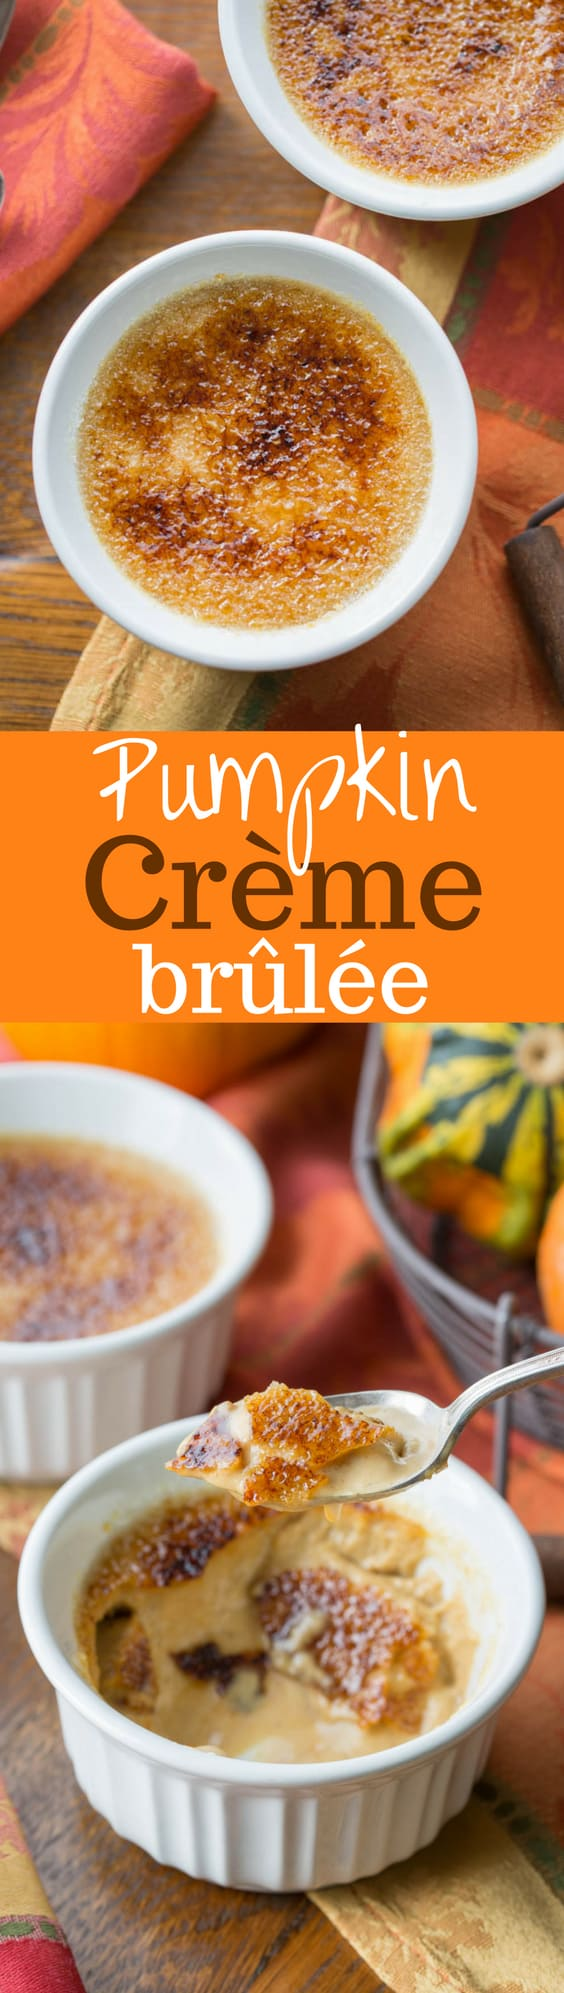 Pumpkin And Brown-Sugar Creme Brulee Recipe — Dishmaps